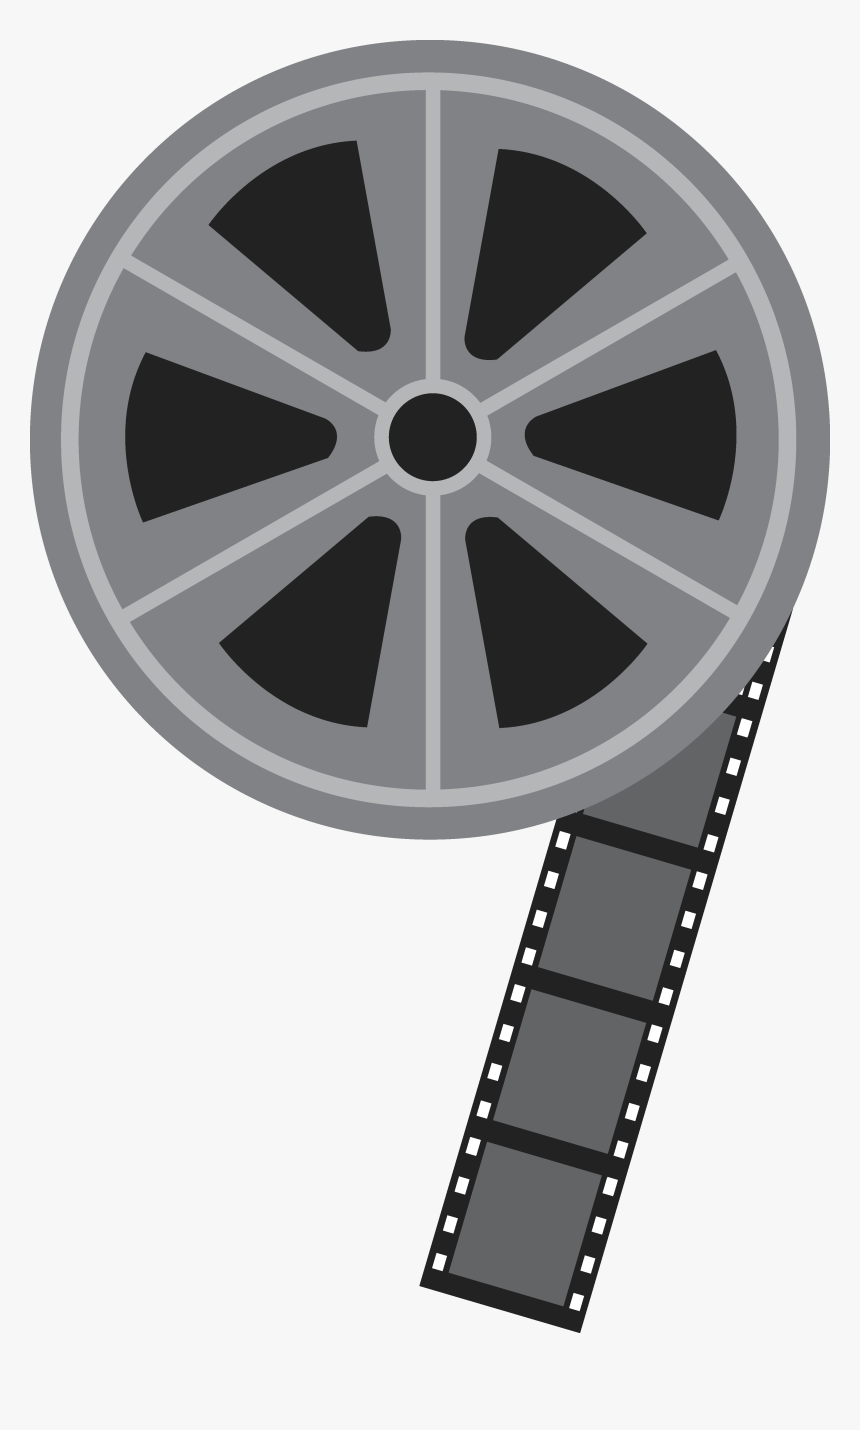 Movie Reel Clip Art 2 - Clip Art Film Reel, HD Png Download, Free Download